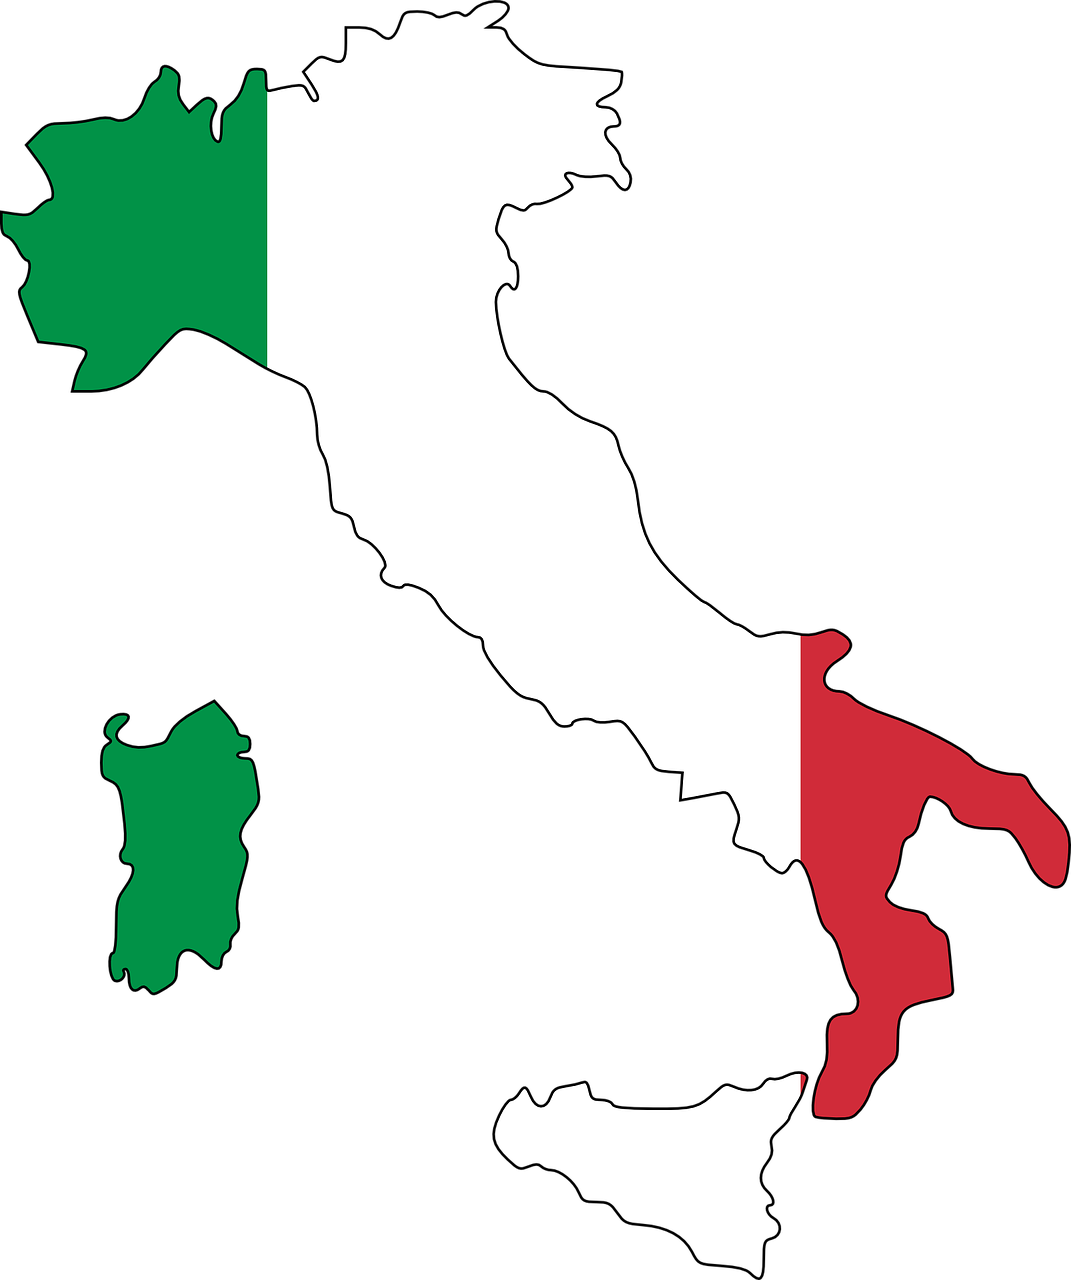 italy, flag, map